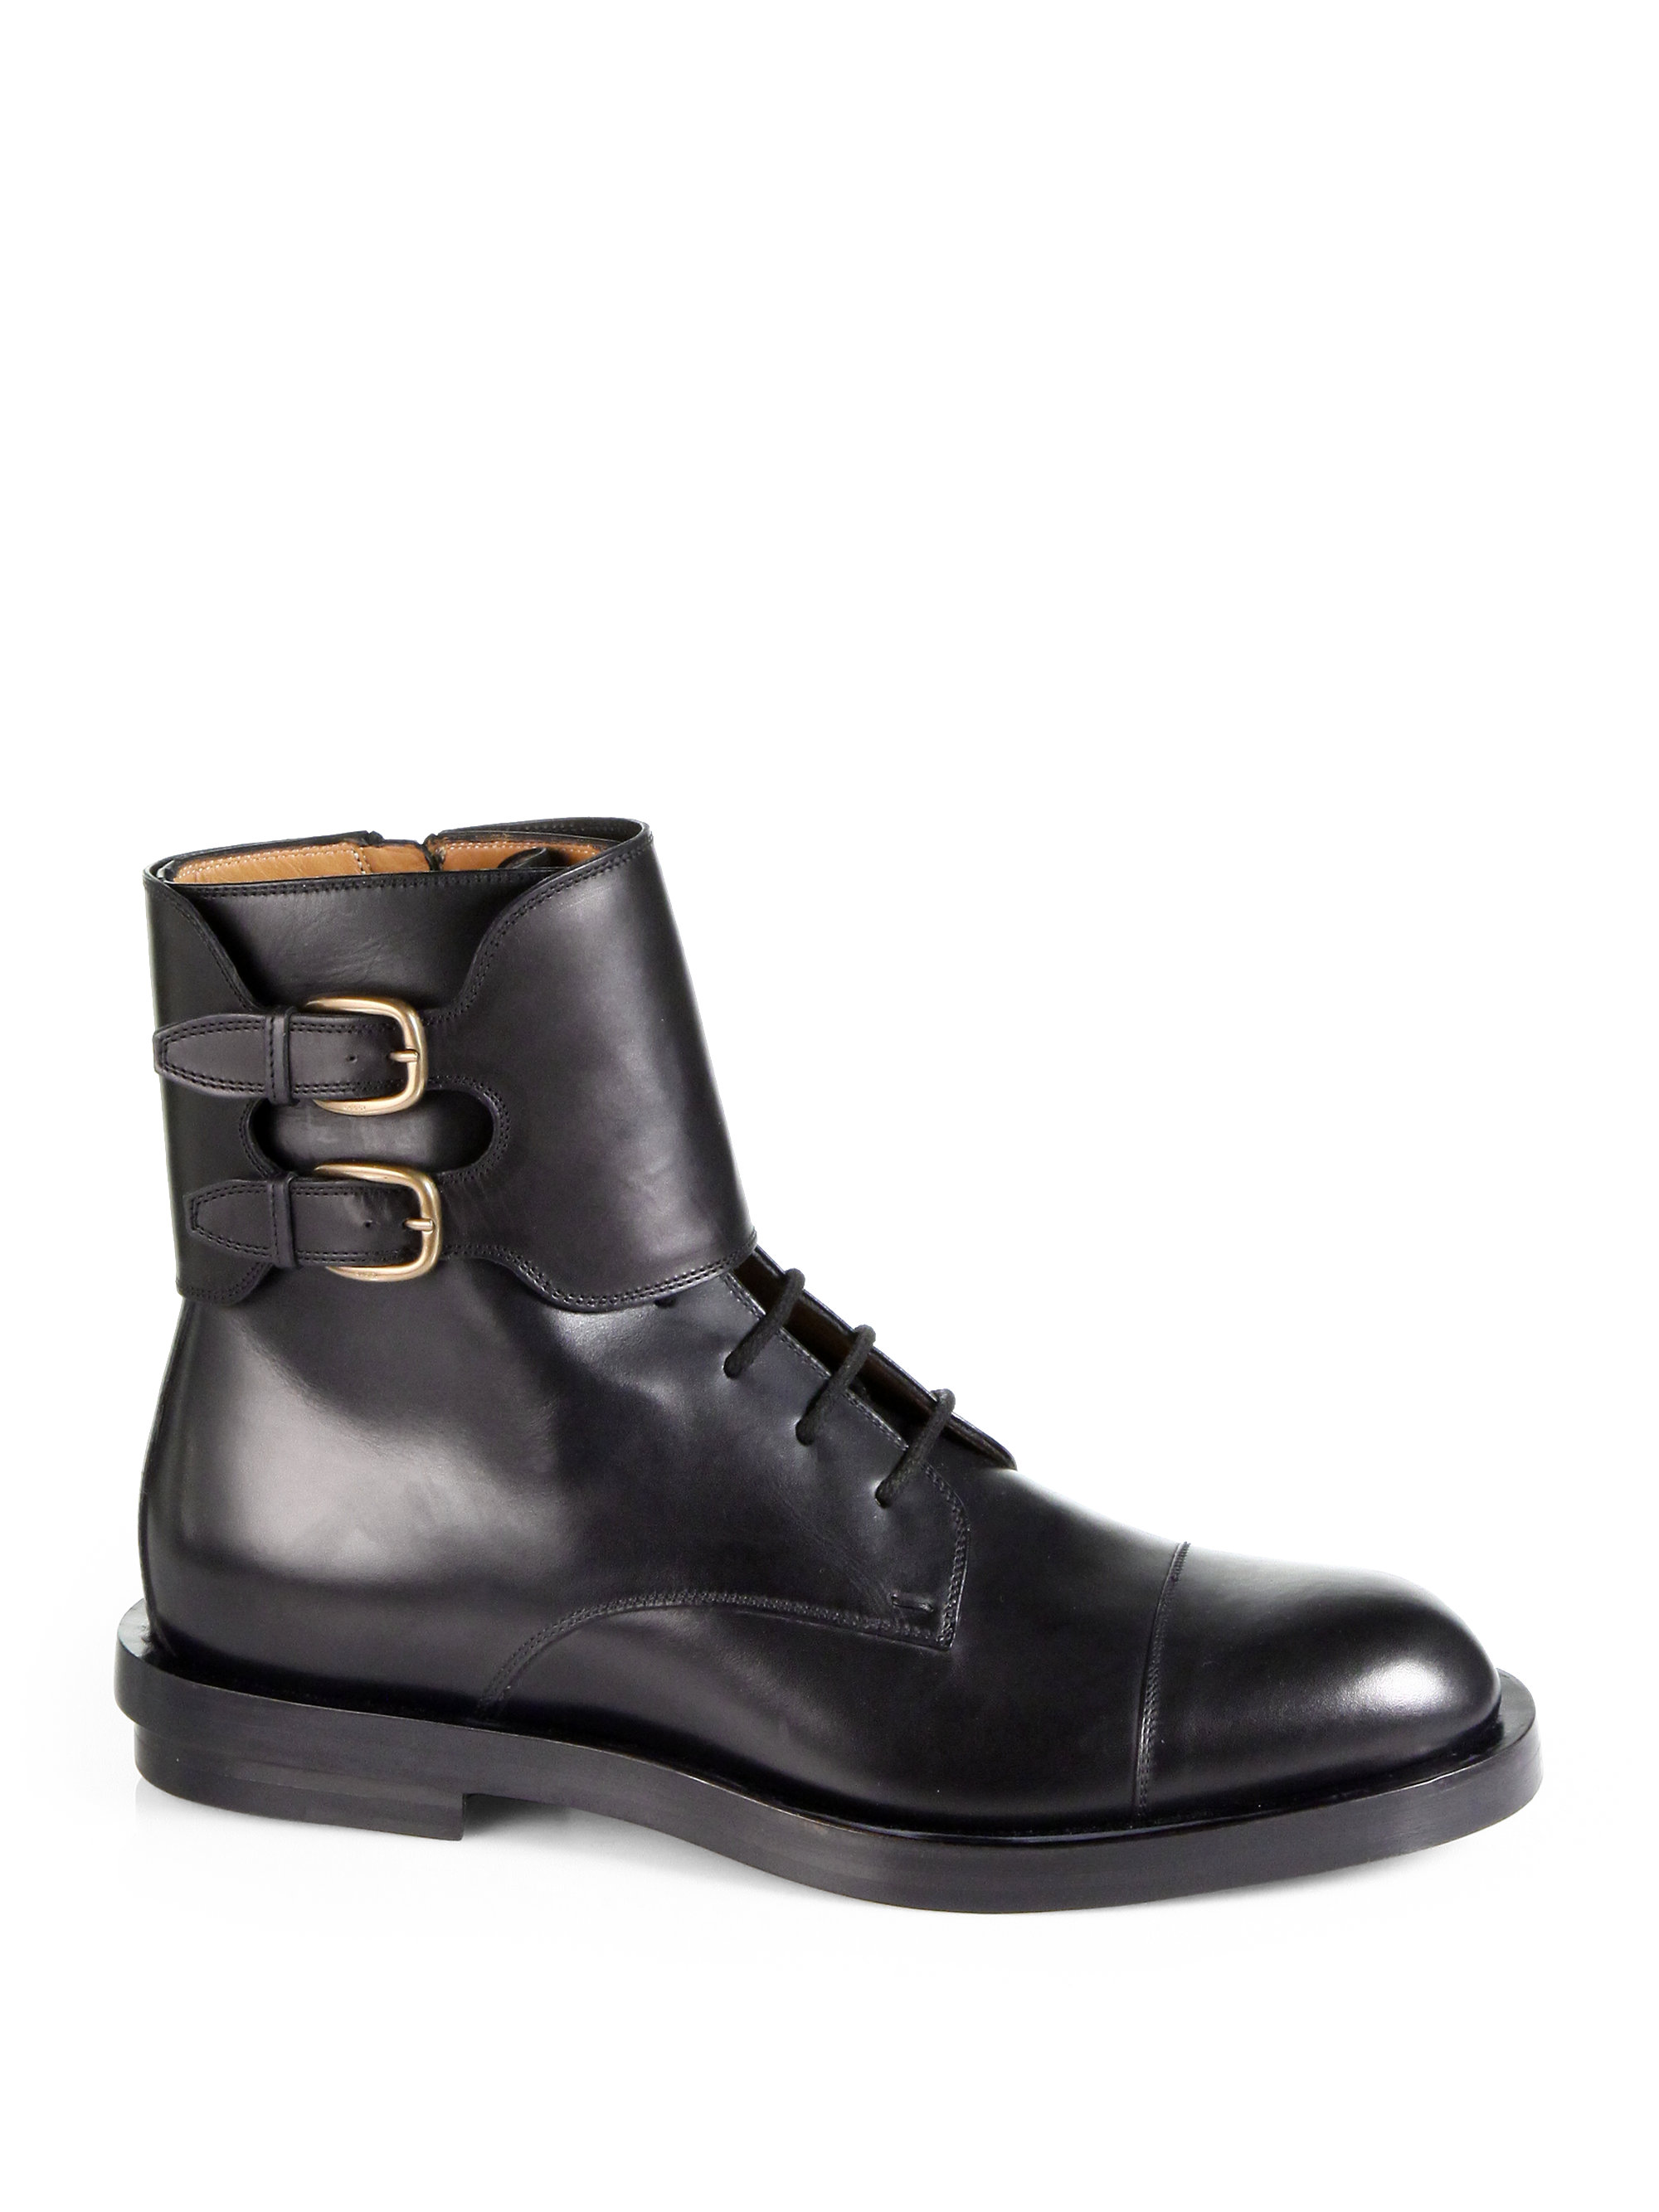 Gucci Leather Double Buckle Military Boots In Black For